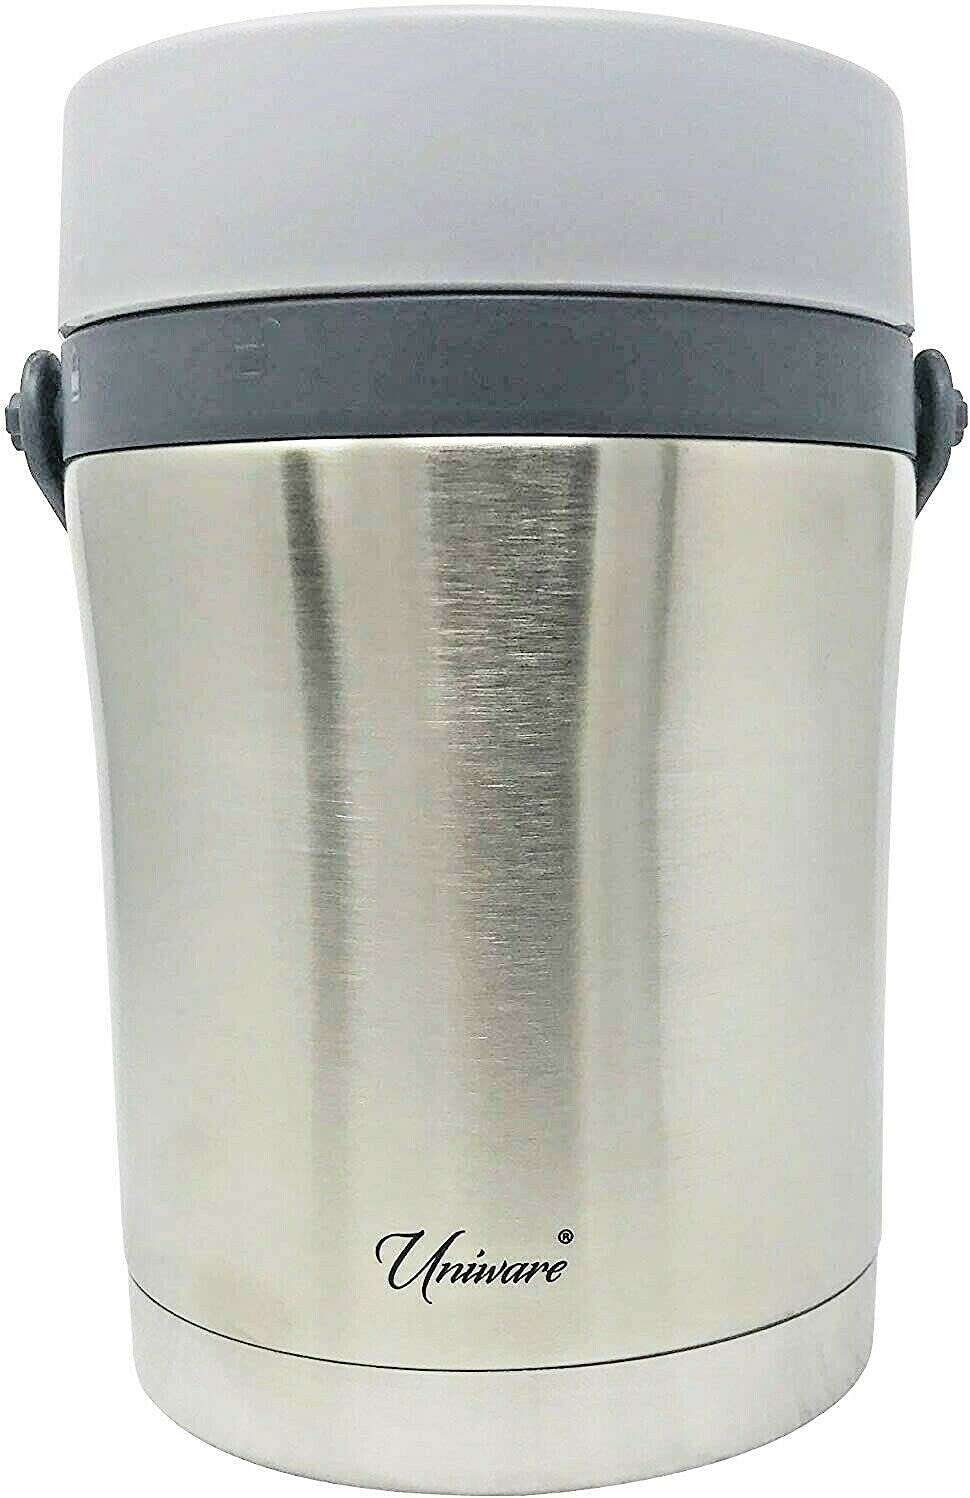 Stainless Steel Vacuum Insulated Food Container Lunch Box,1700 ml, Silver